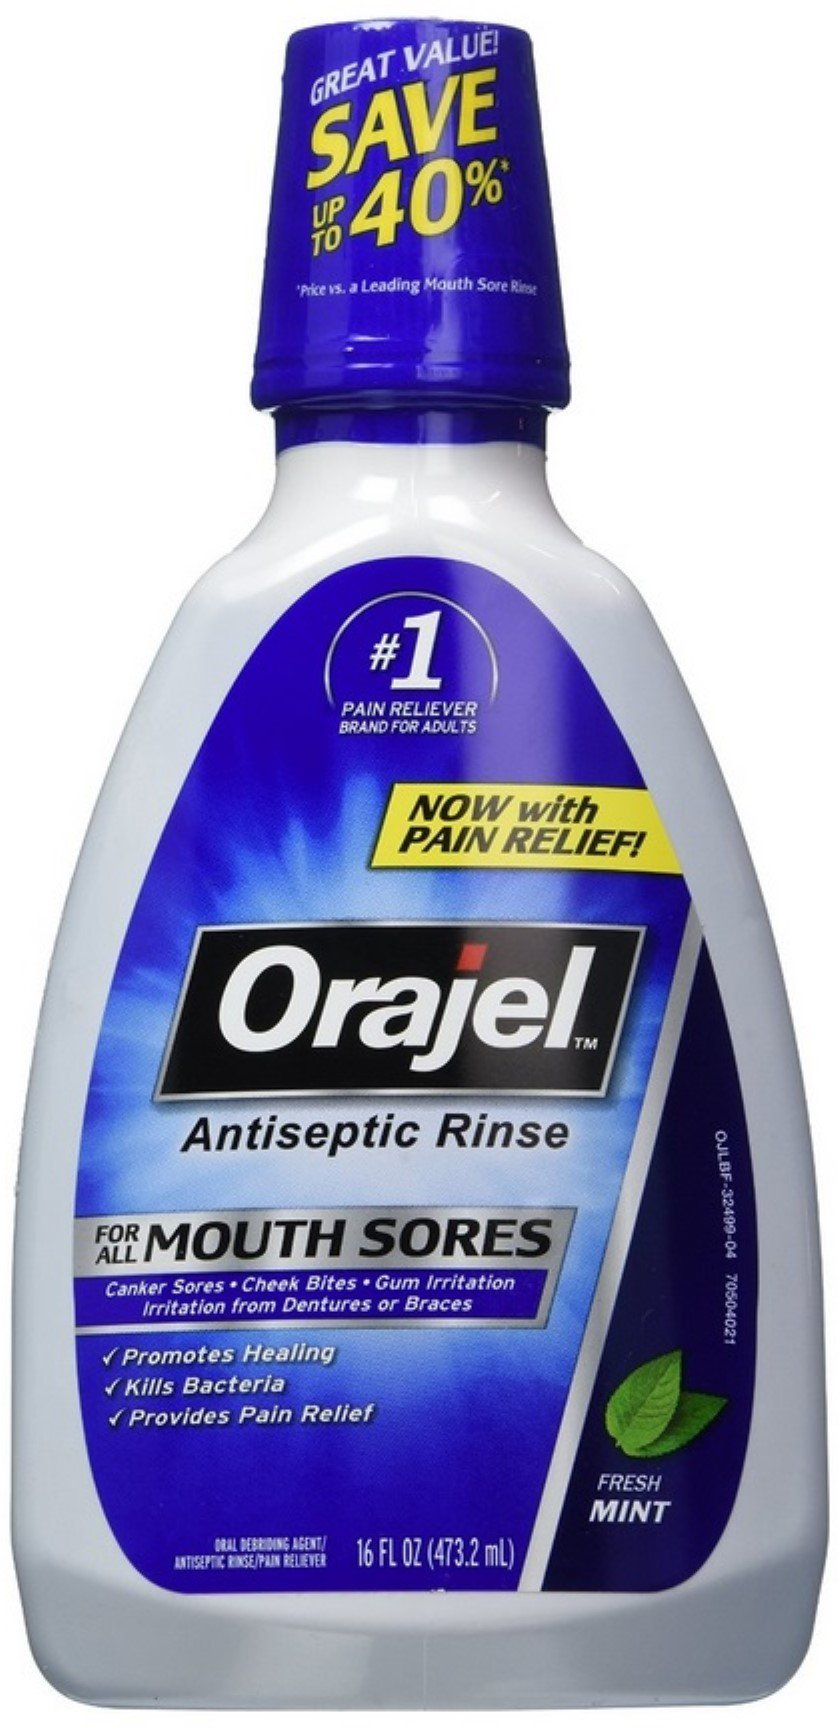 Orajel Antiseptic Mouth Sore Rinse 16 oz (Pack of 12)